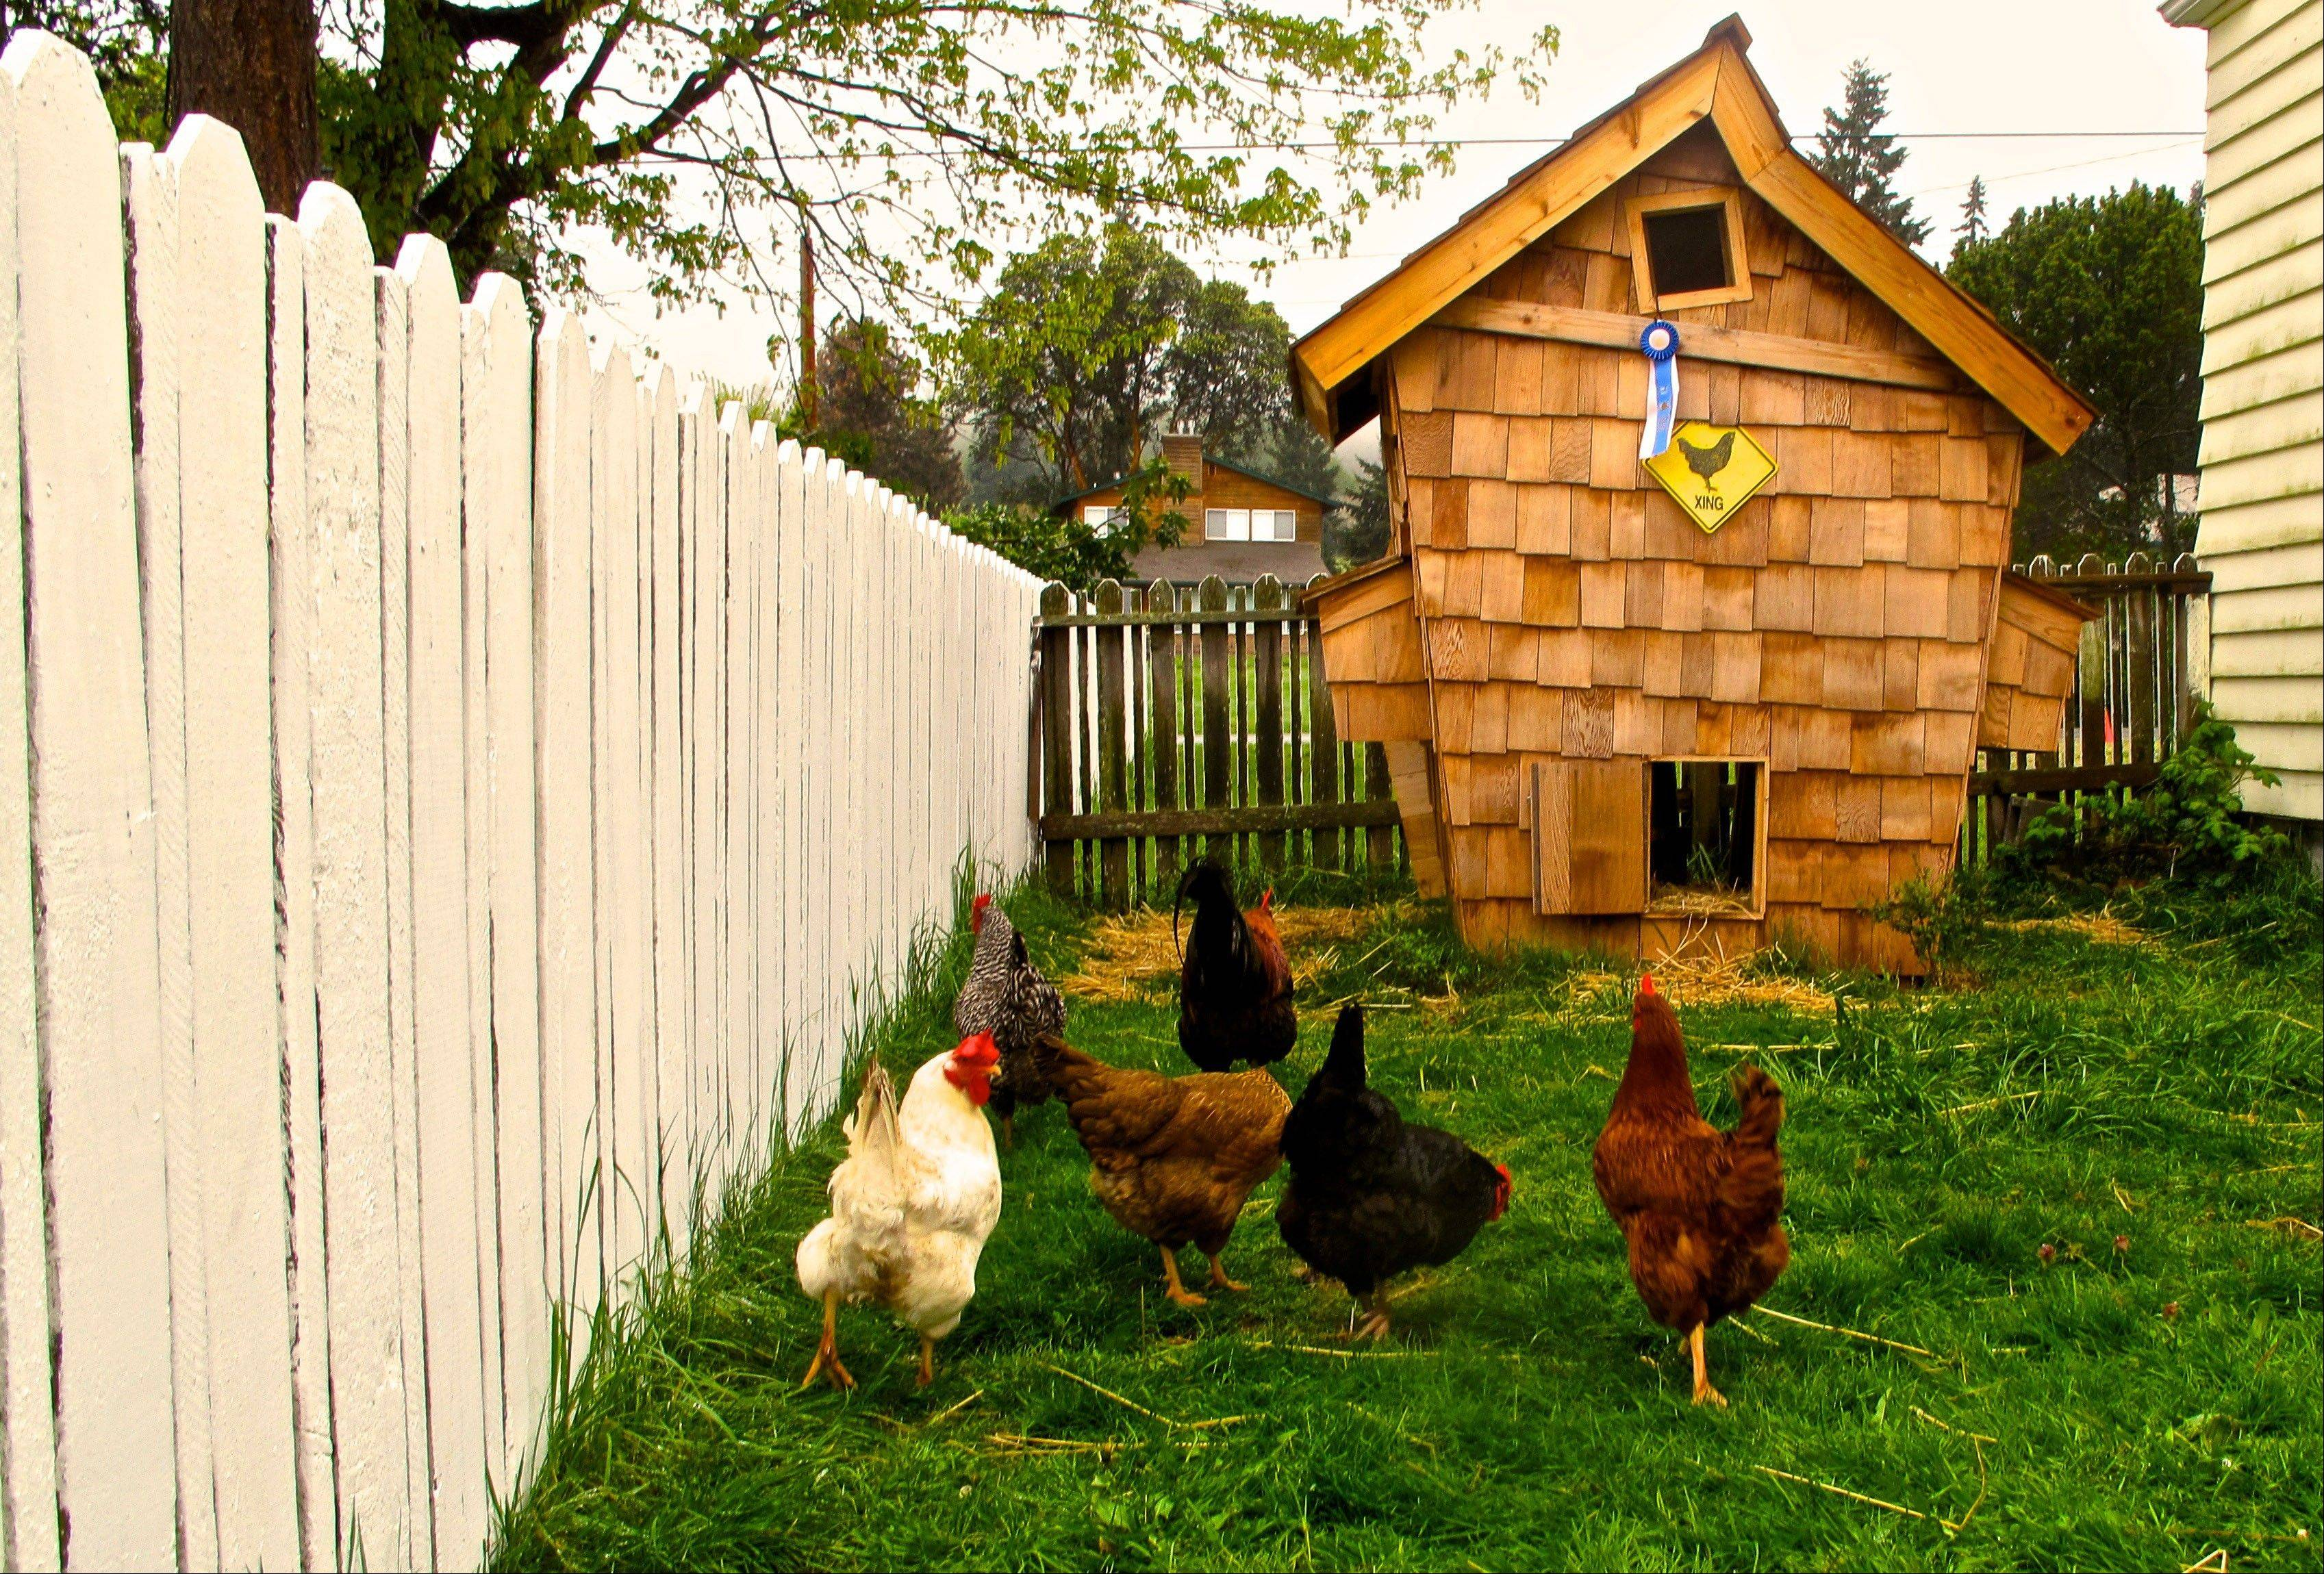 A �Crooked Coop� in Clinton, Wash., is reminiscent of a fairy tale house of Dr. Seuss. Designer chicken coops are becoming a new kind of yard art.